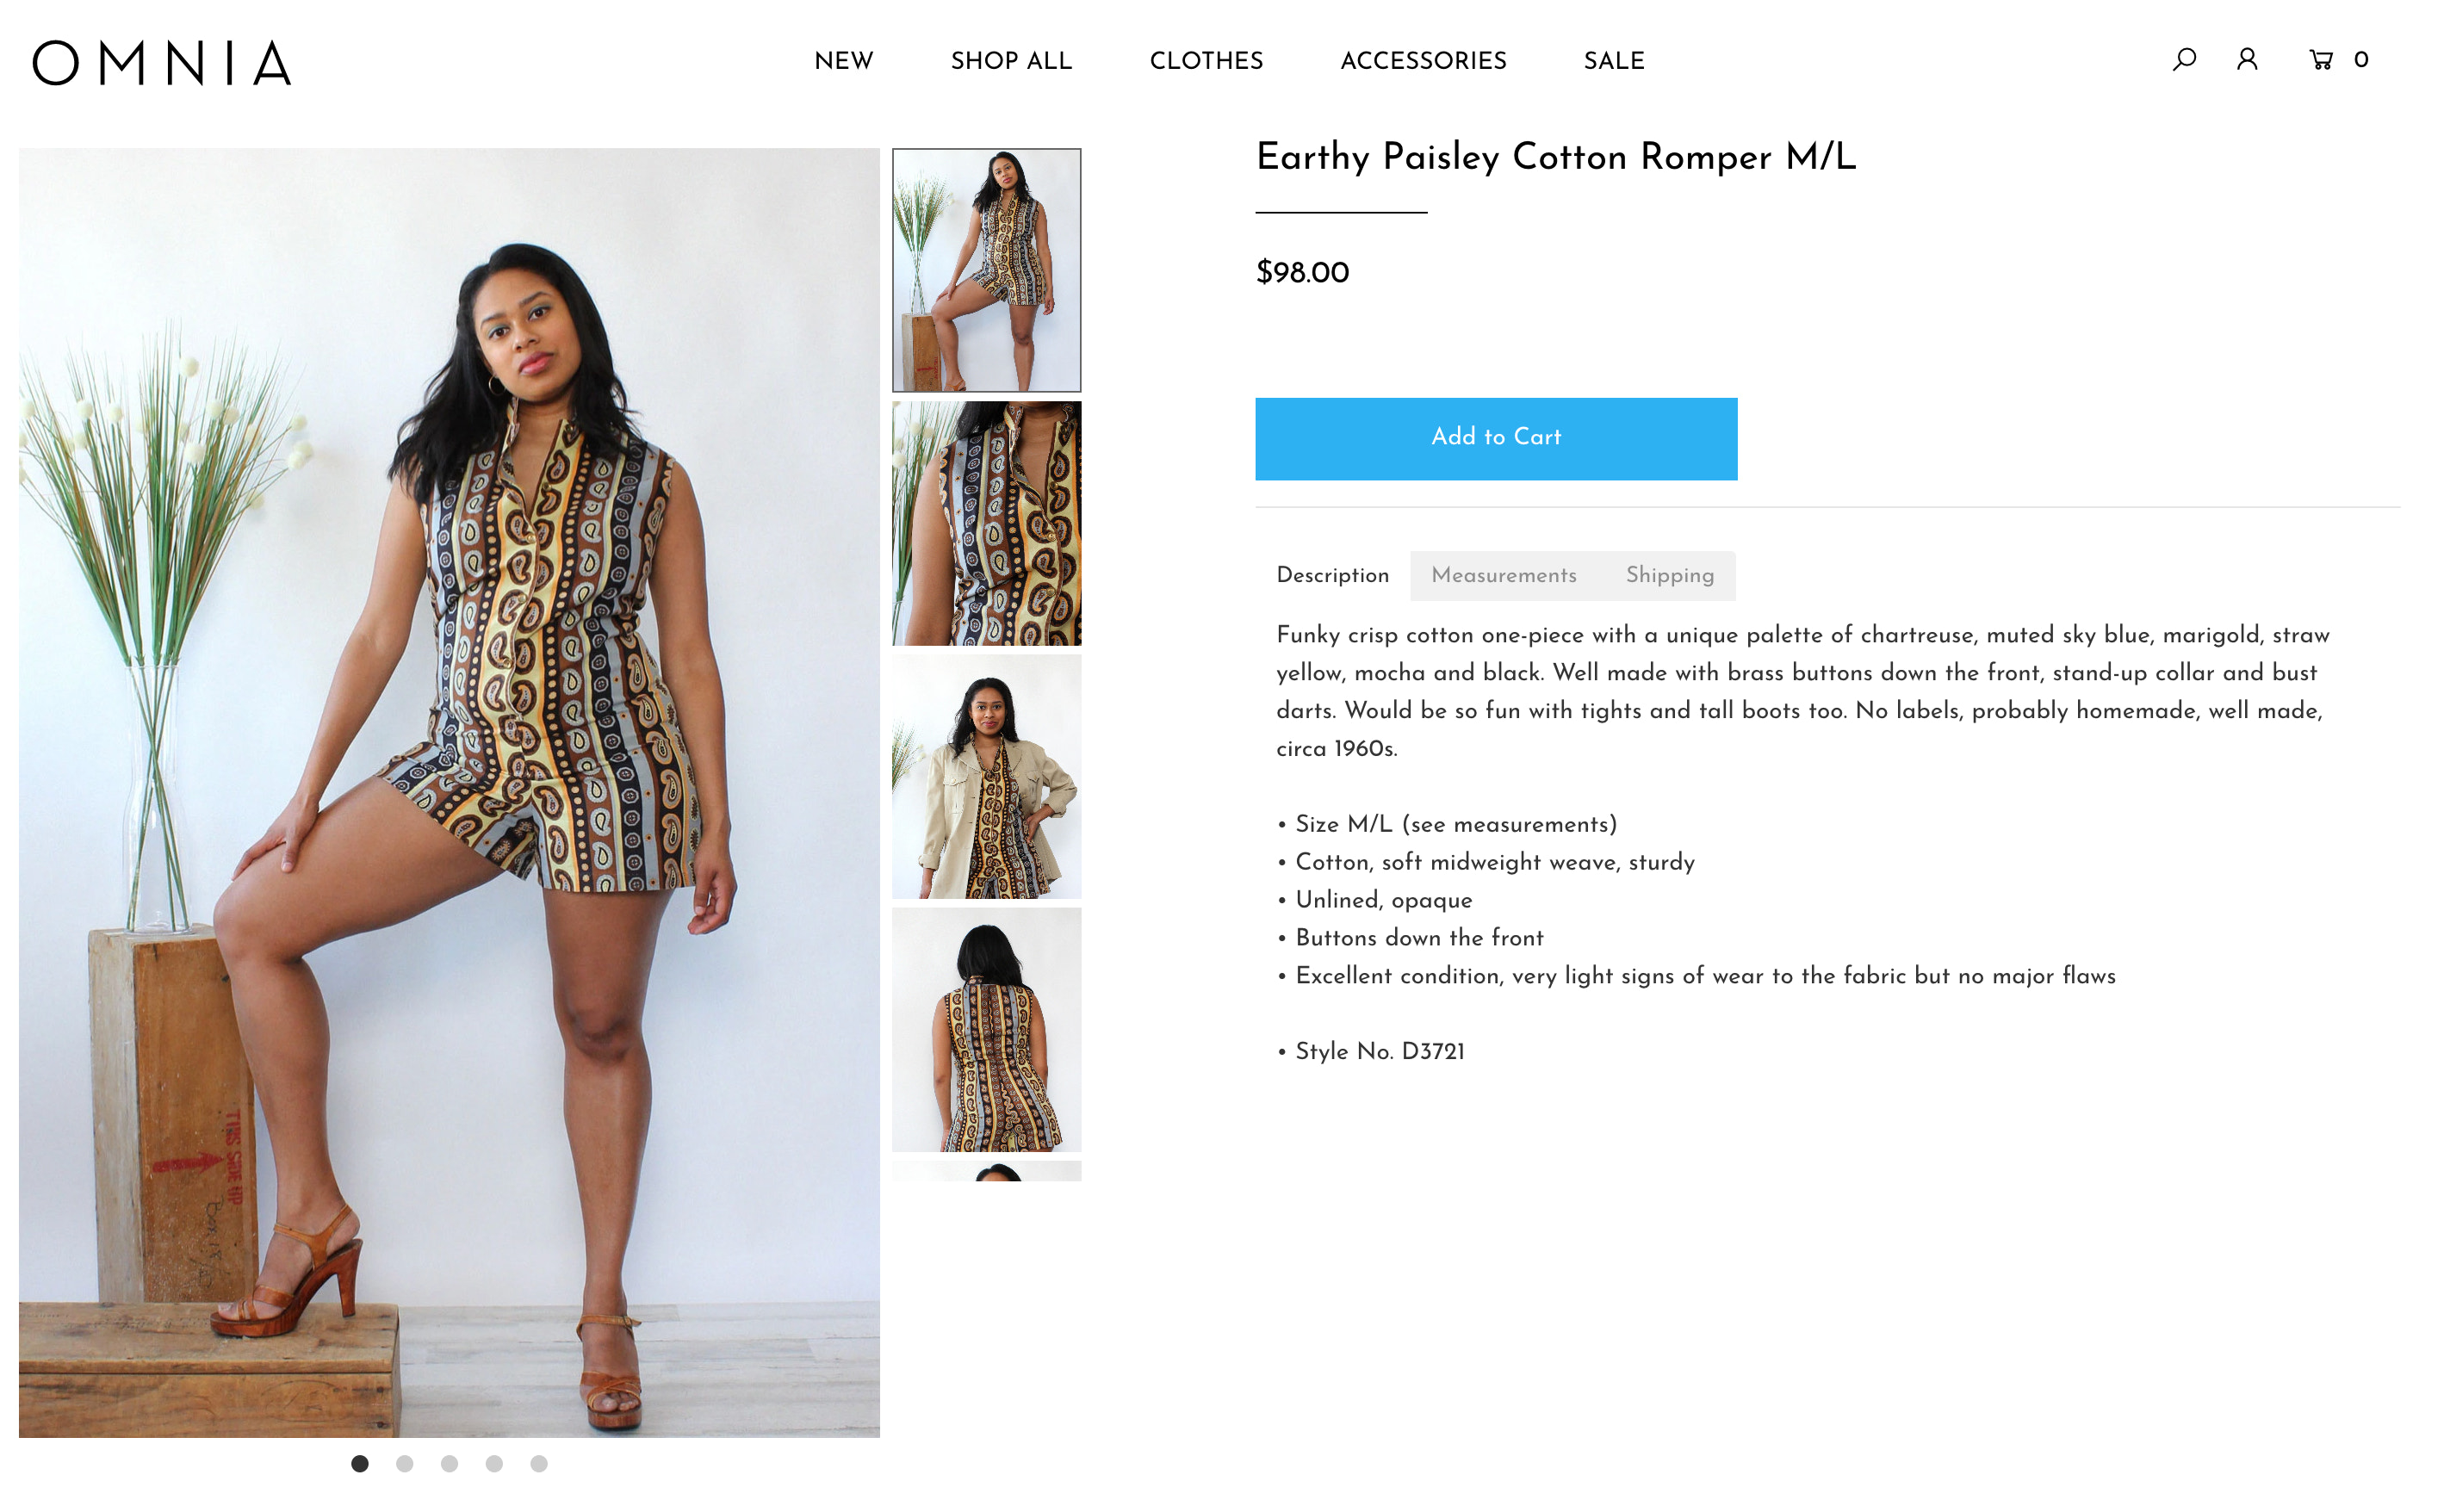 Example of a product page on OMNIA's website